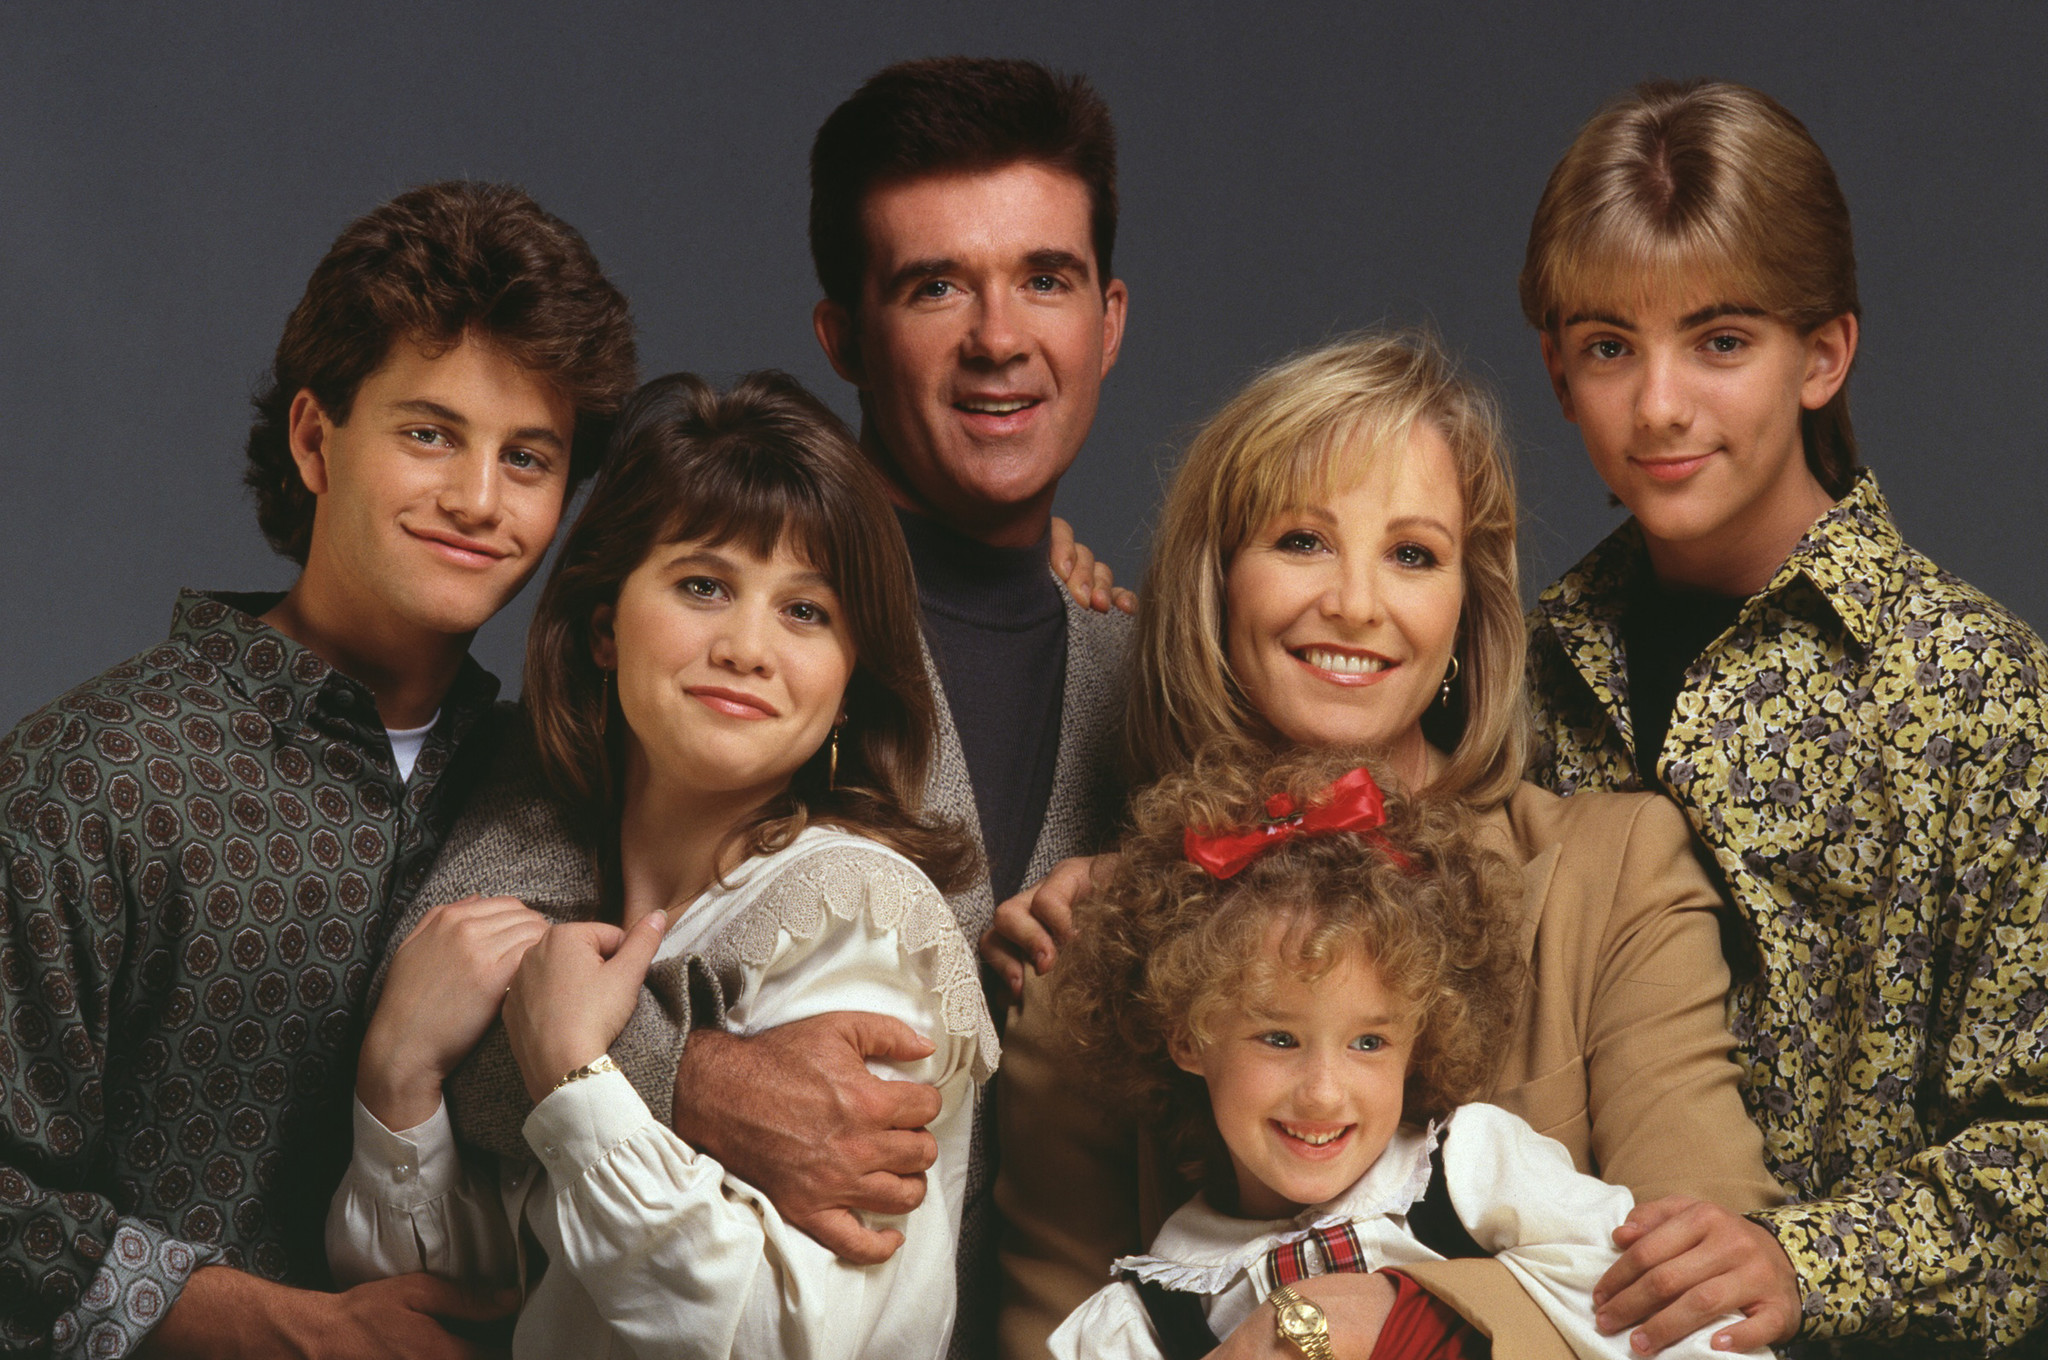 Alan Thicke and the cast of Growing Pains had to over e